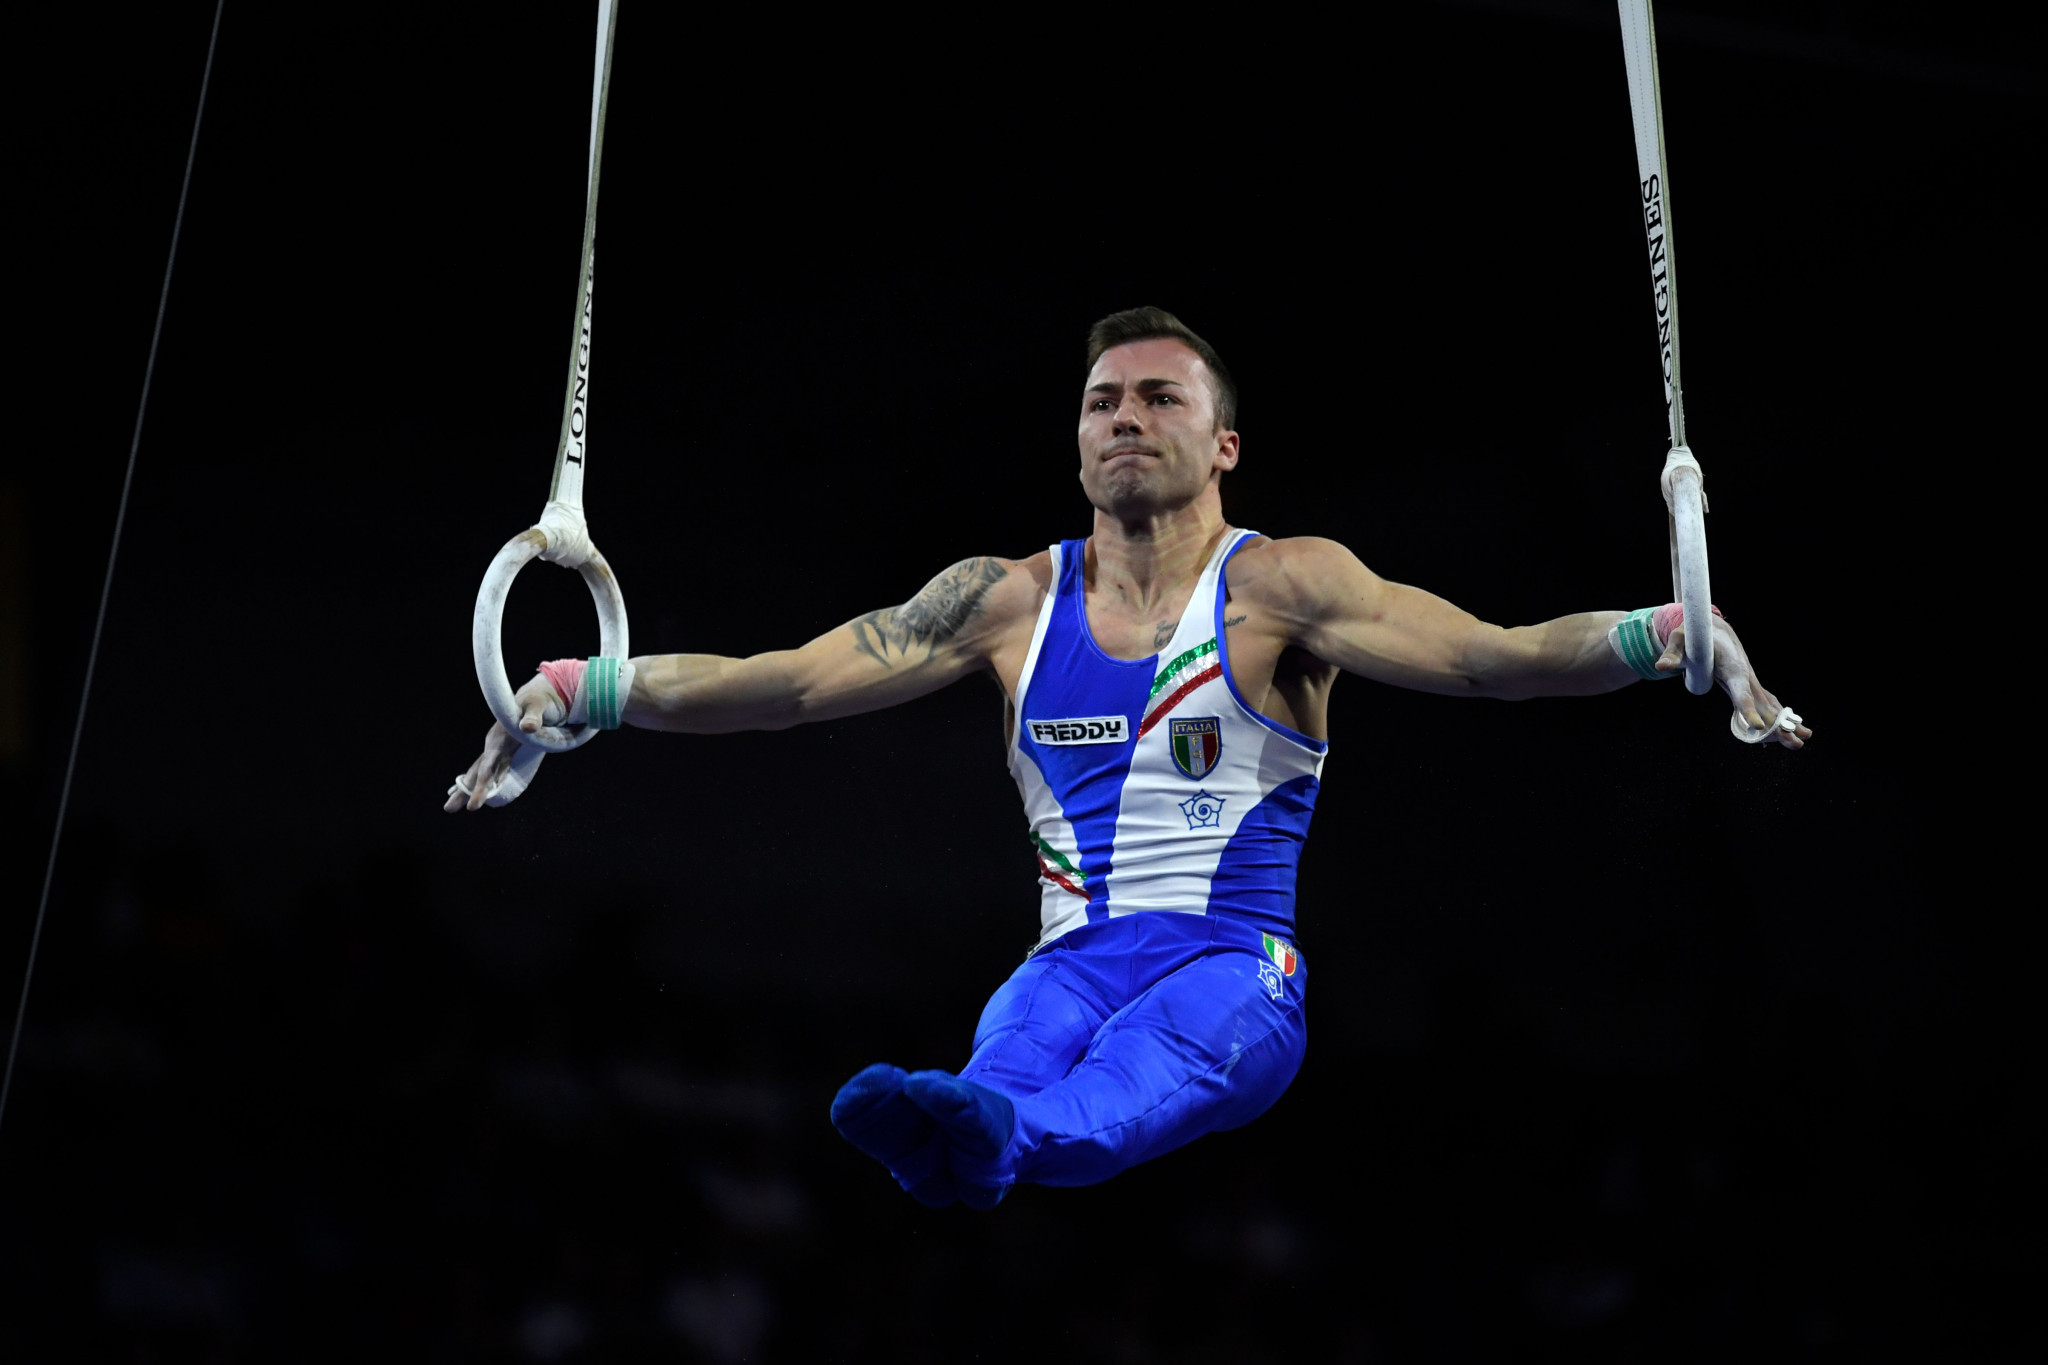 Italy became the latest country to withdraw from the European Artistic and Rhythmic Gymnastics Championships ©Getty Images